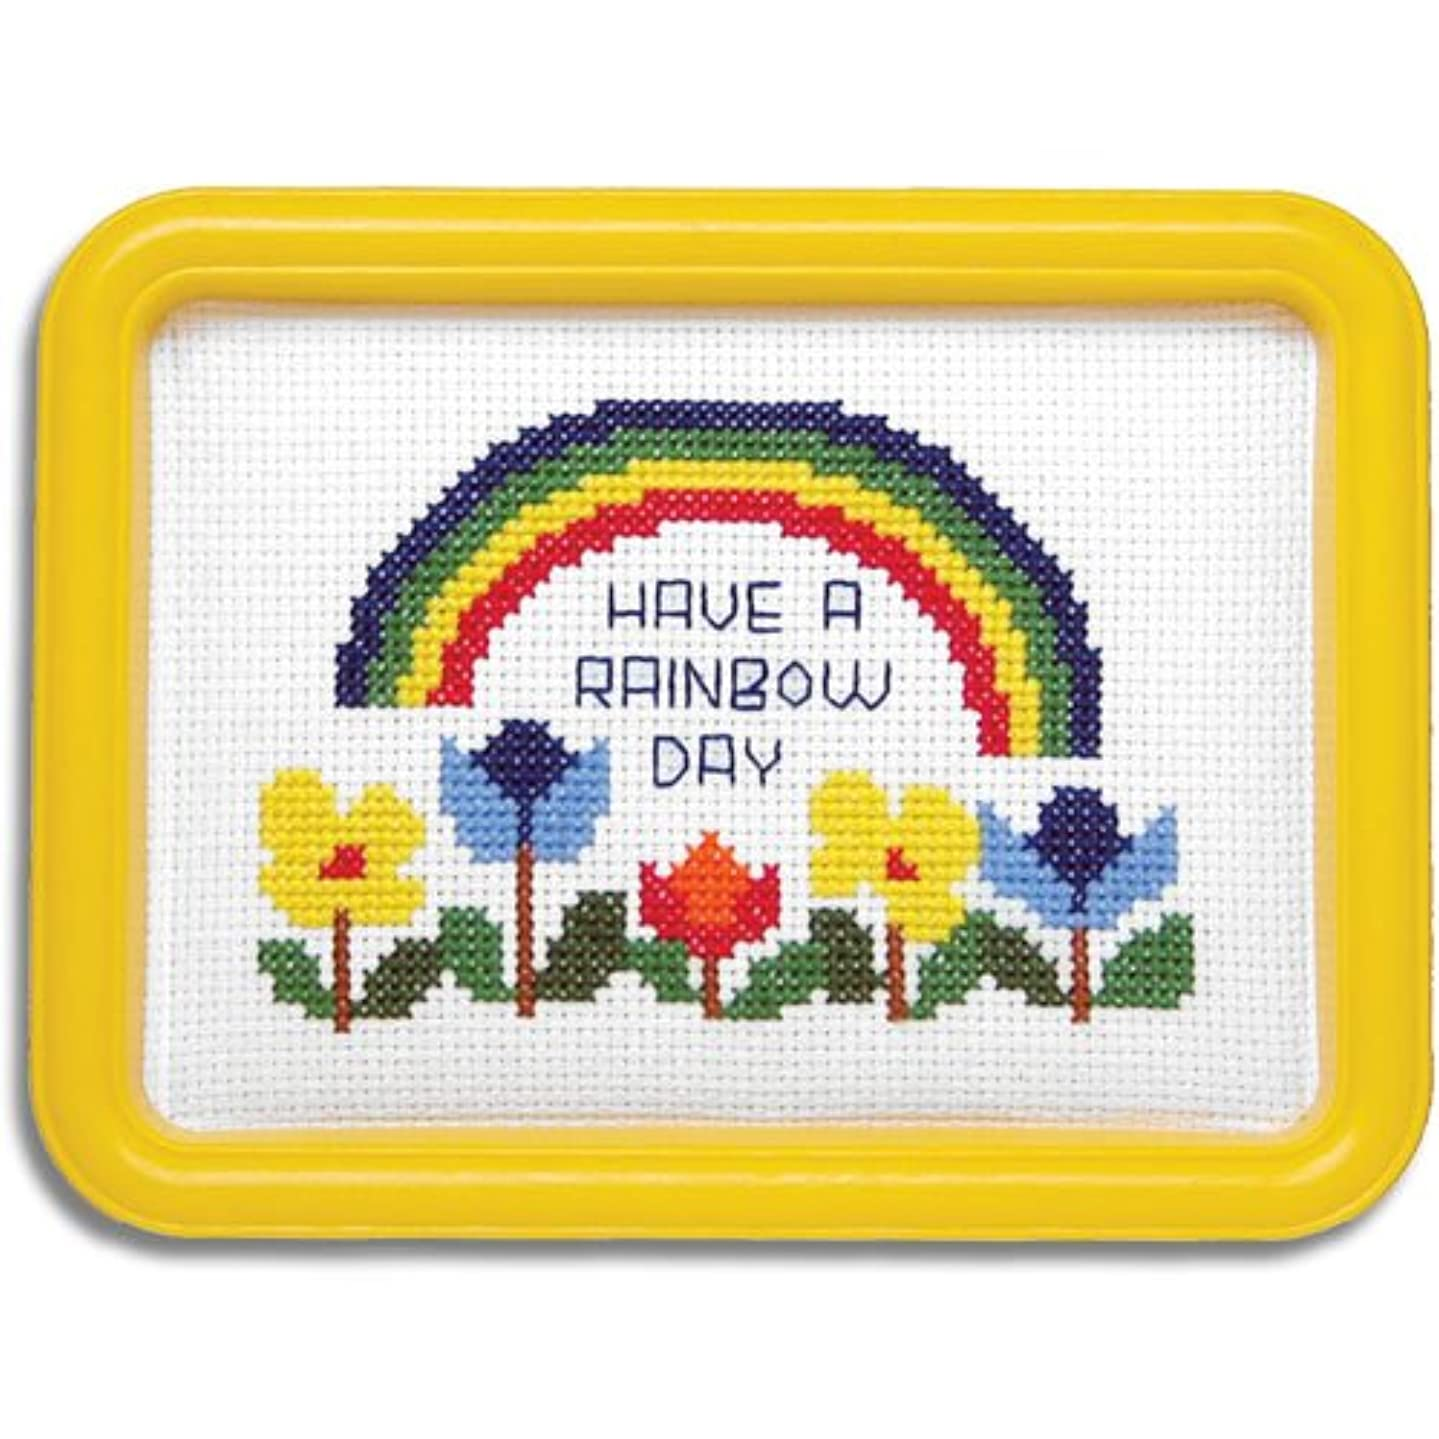 Easystreet Have A Rainbow Day with Flowers Counted Cross-Stitch Kit